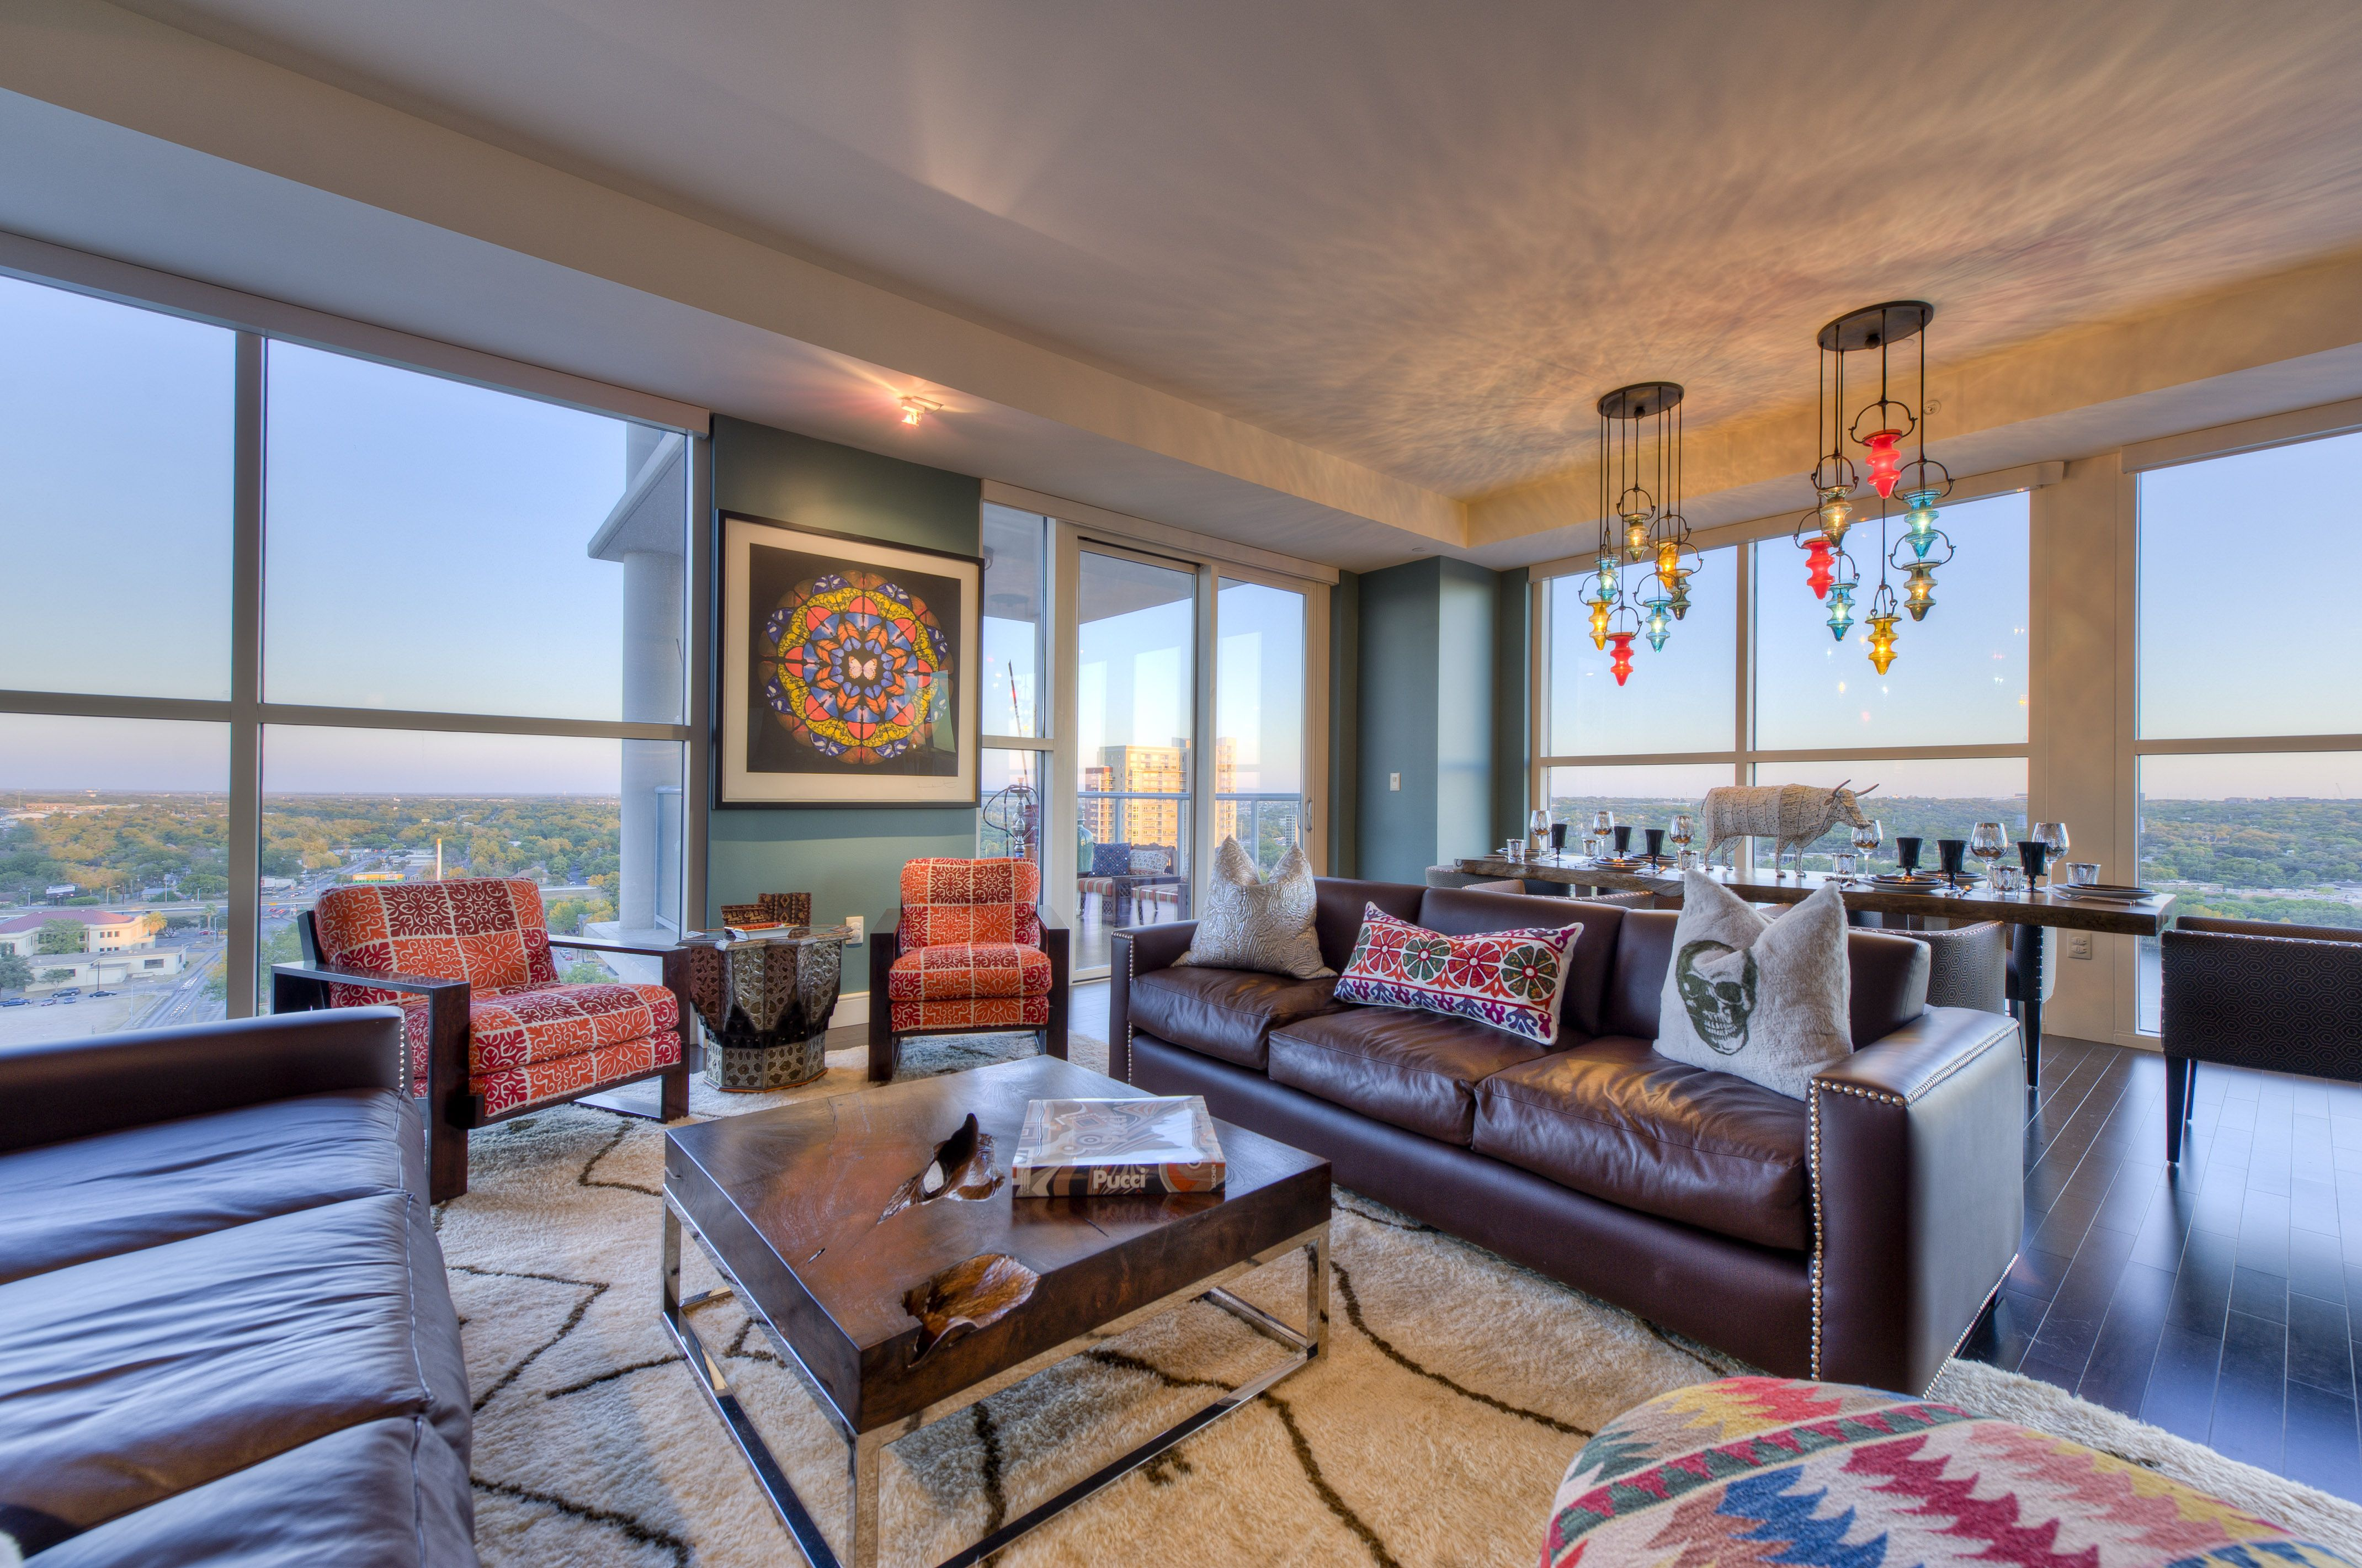 Check Out This Texas Living Room By Wrightinteriors Love The Use